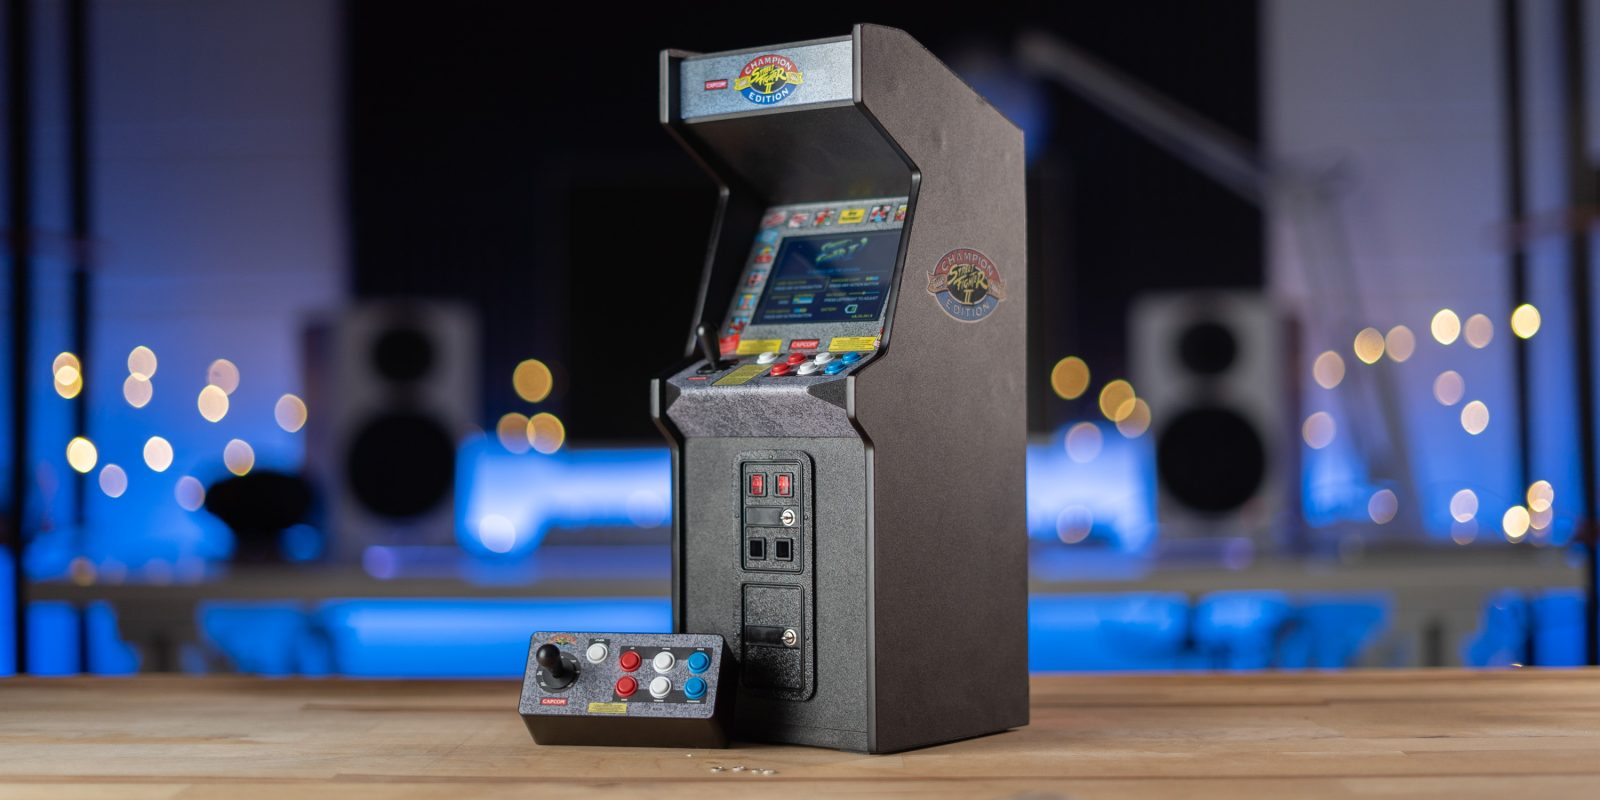 Street Fighter II RepliCade review: An incredibly-detailed mini arcade [Video]